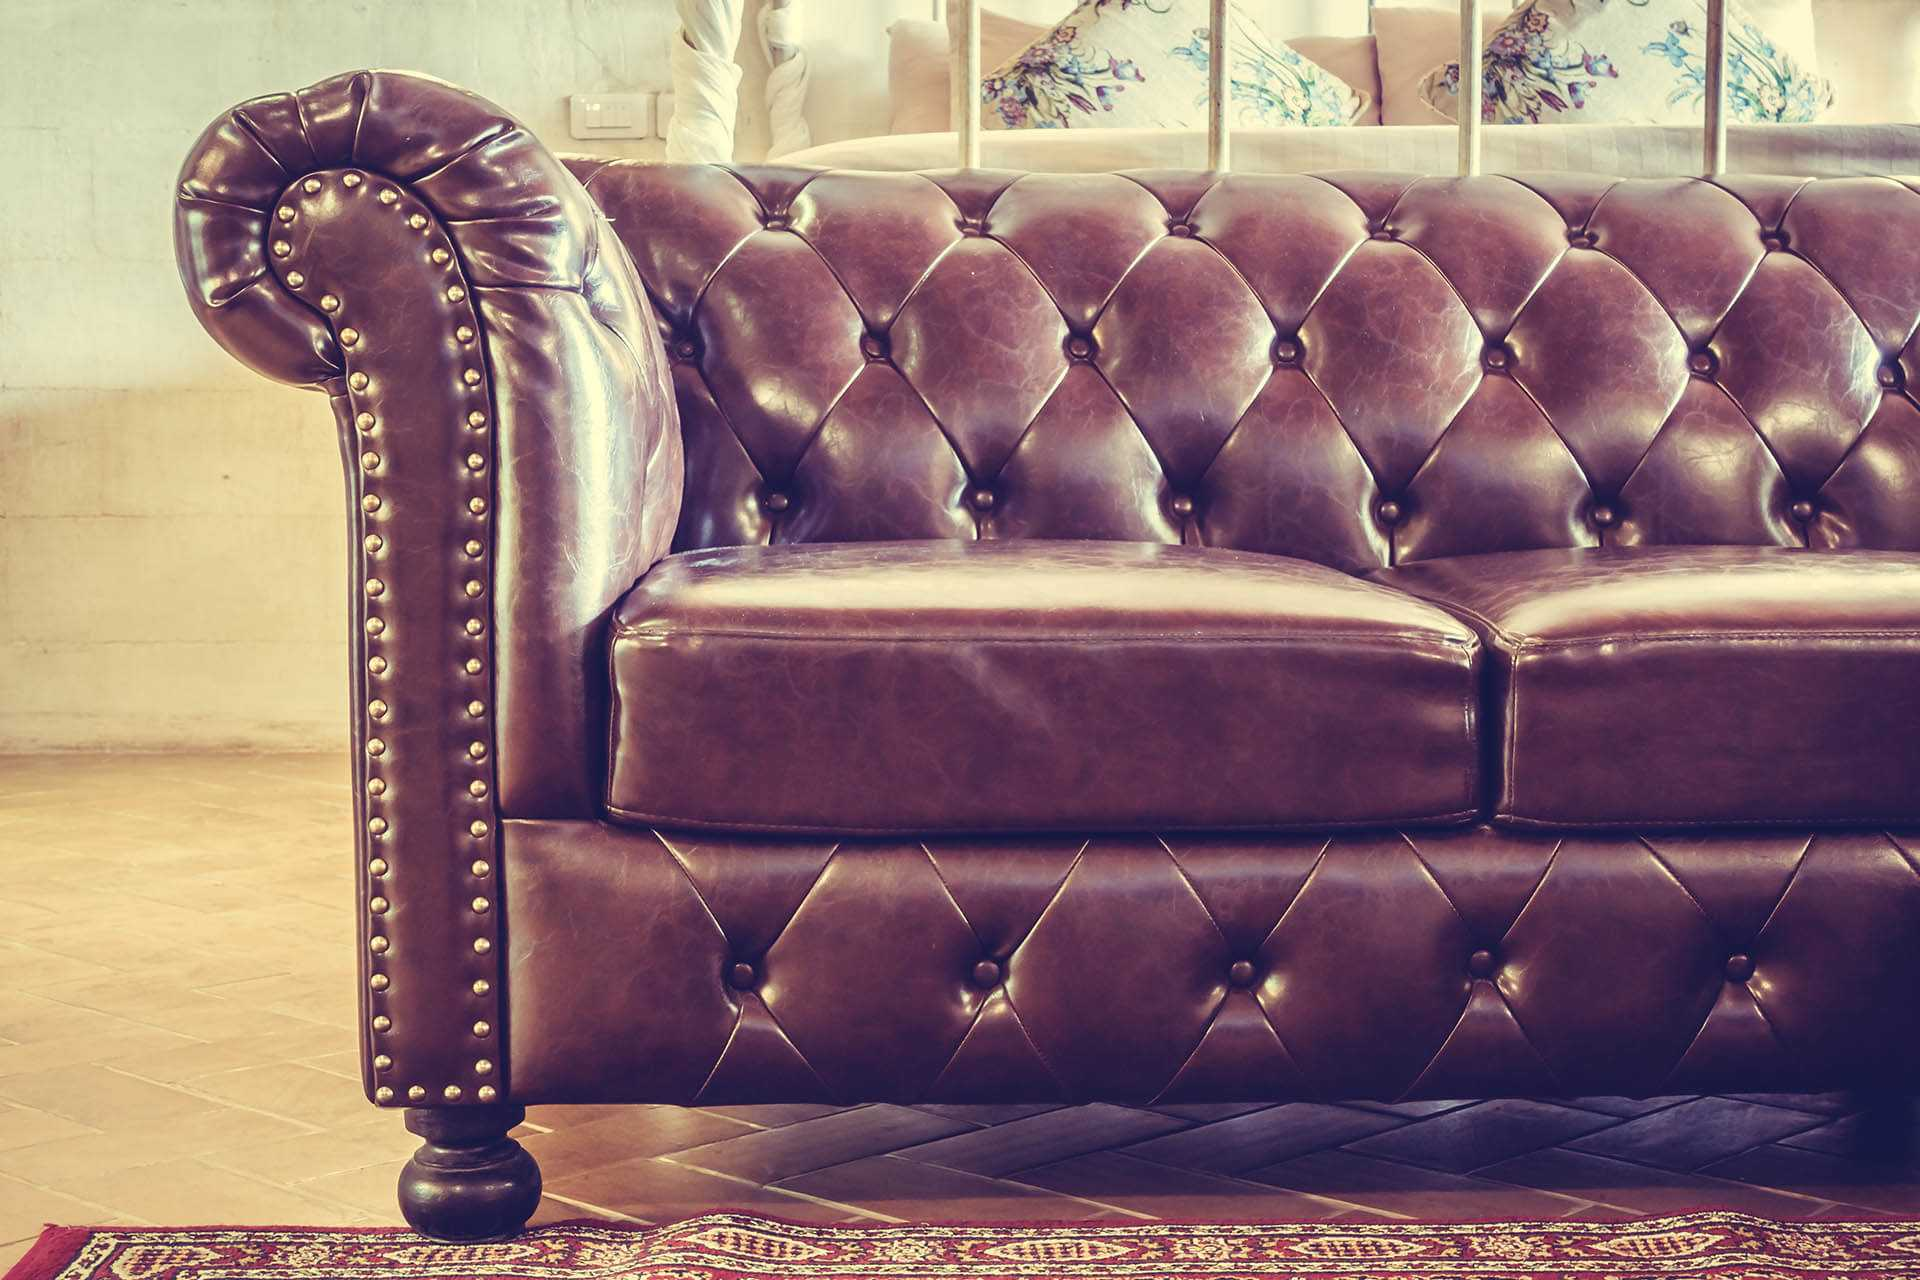 Astonishing Modern Leather Sofa Best Leather Sofa Brands Alphanode Cool Chair Designs And Ideas Alphanodeonline